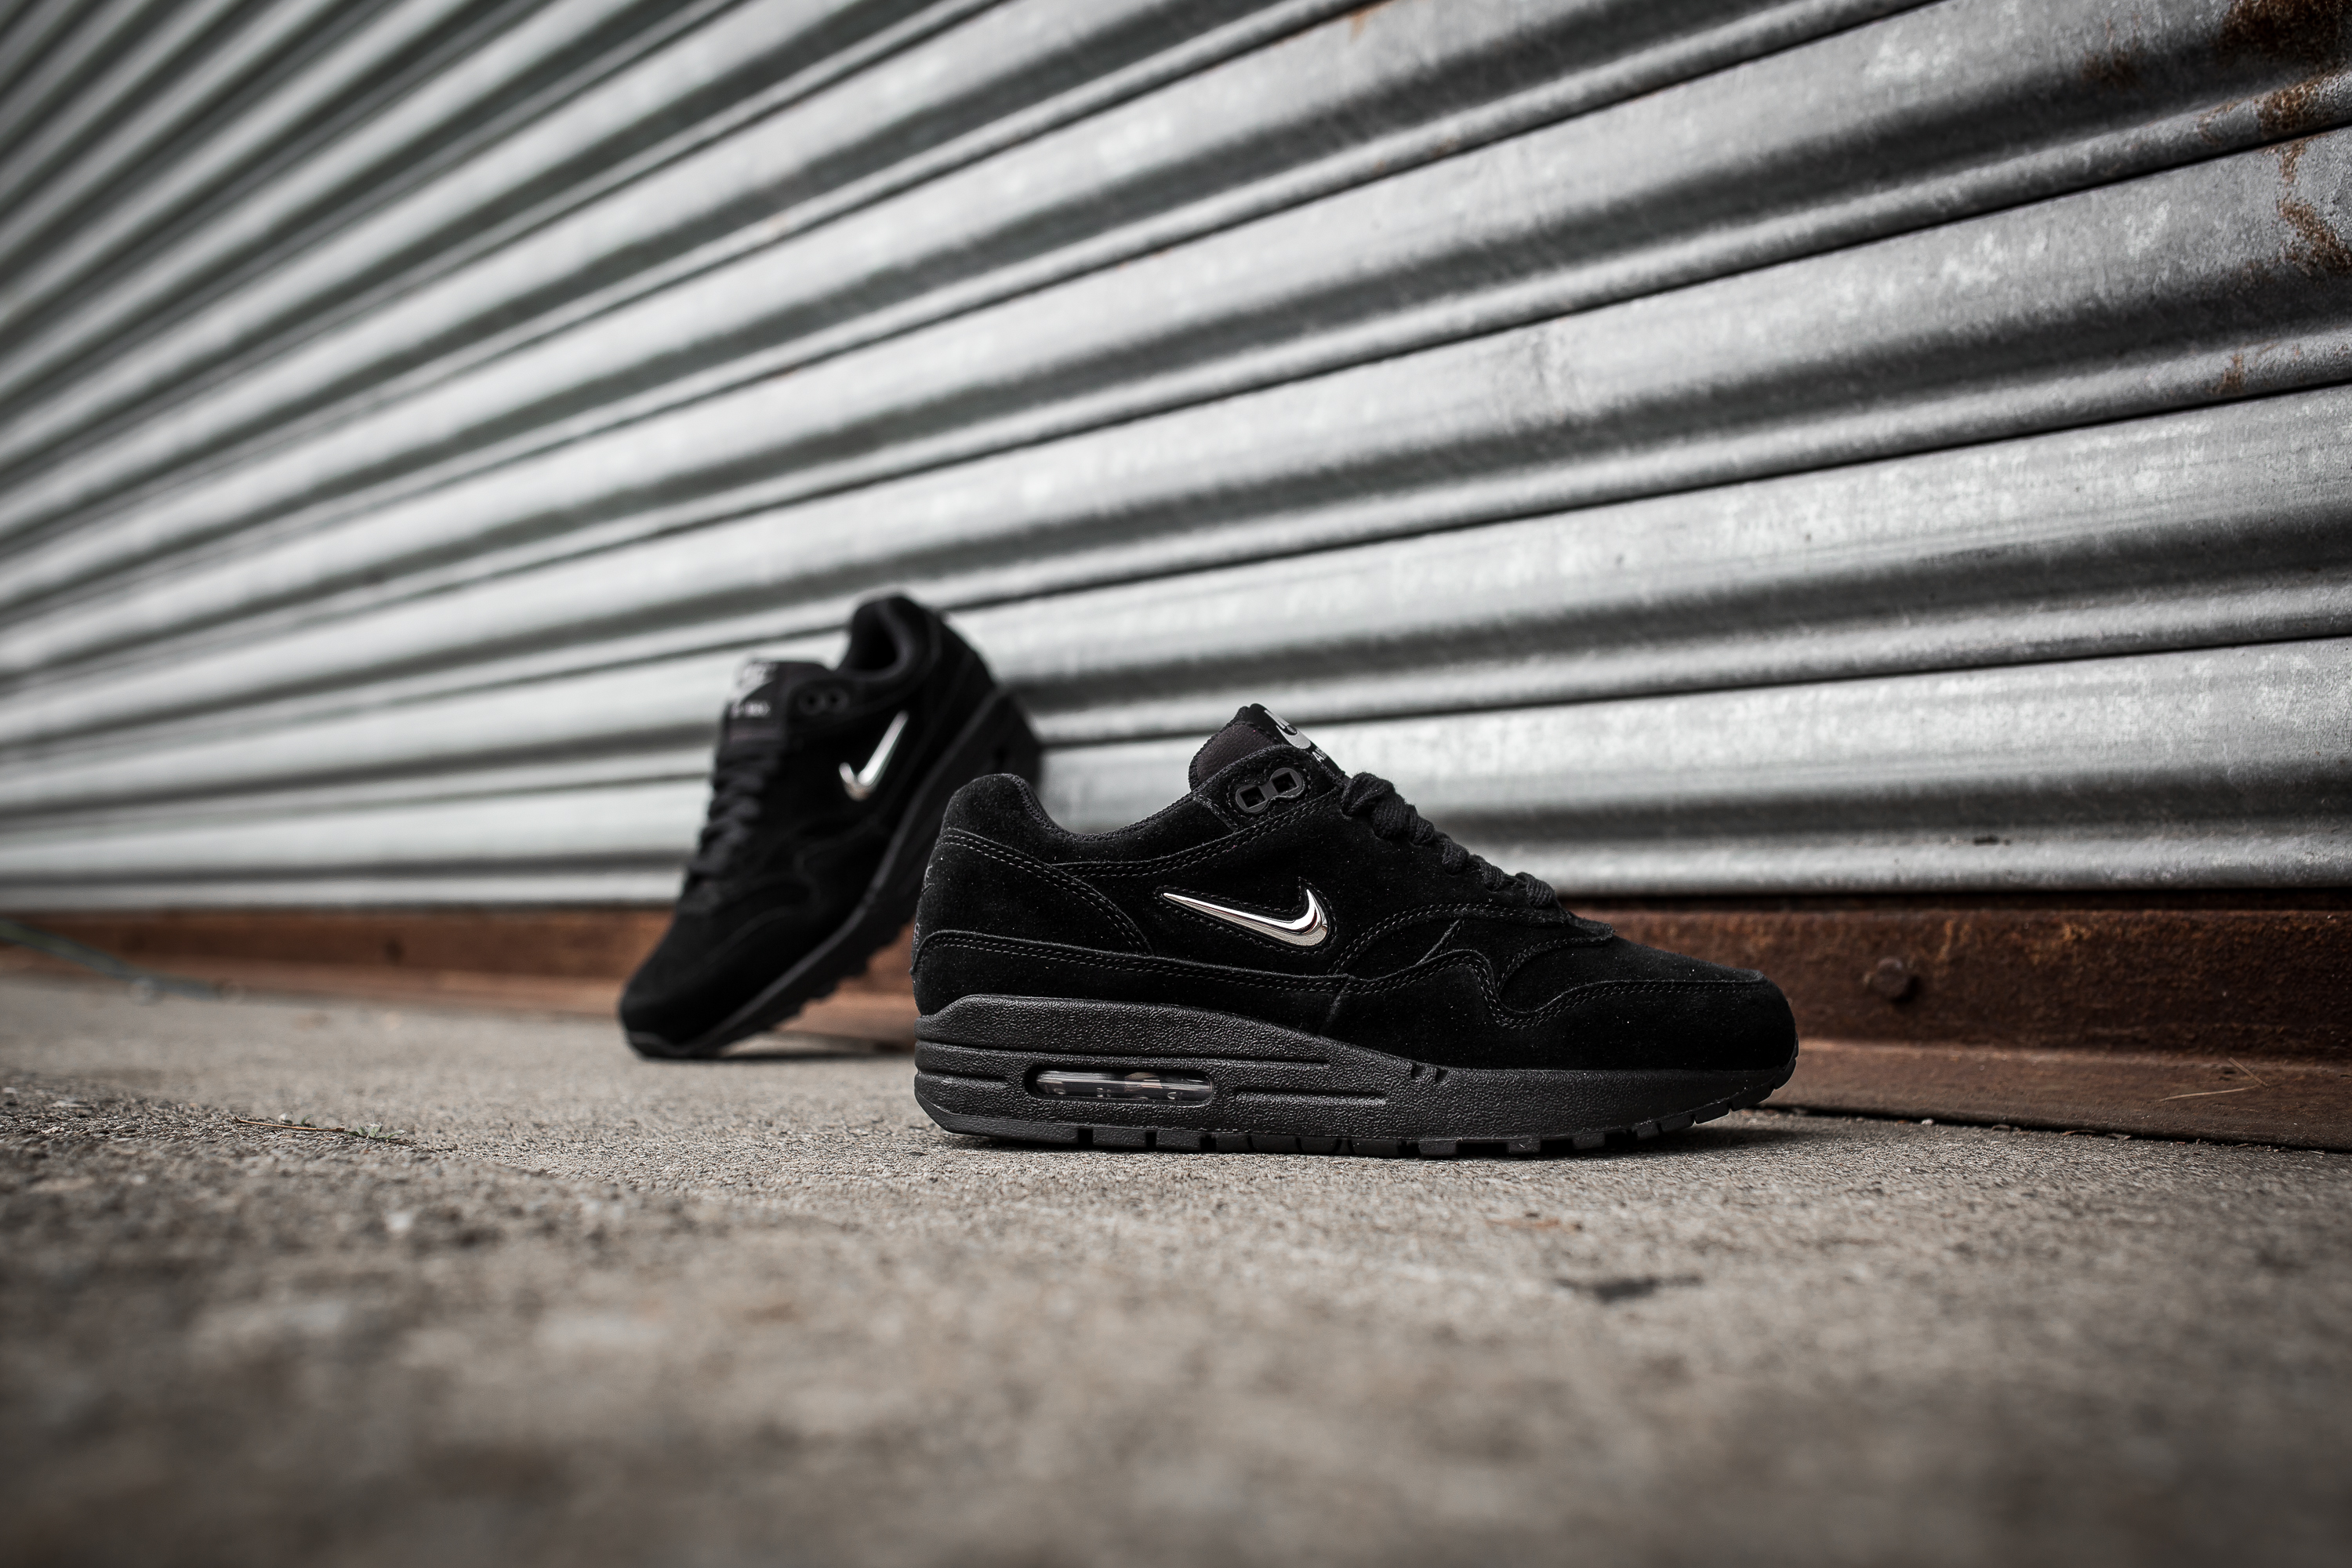 order 90604 nike air max 1 sc jewel Noir chrome 50ded